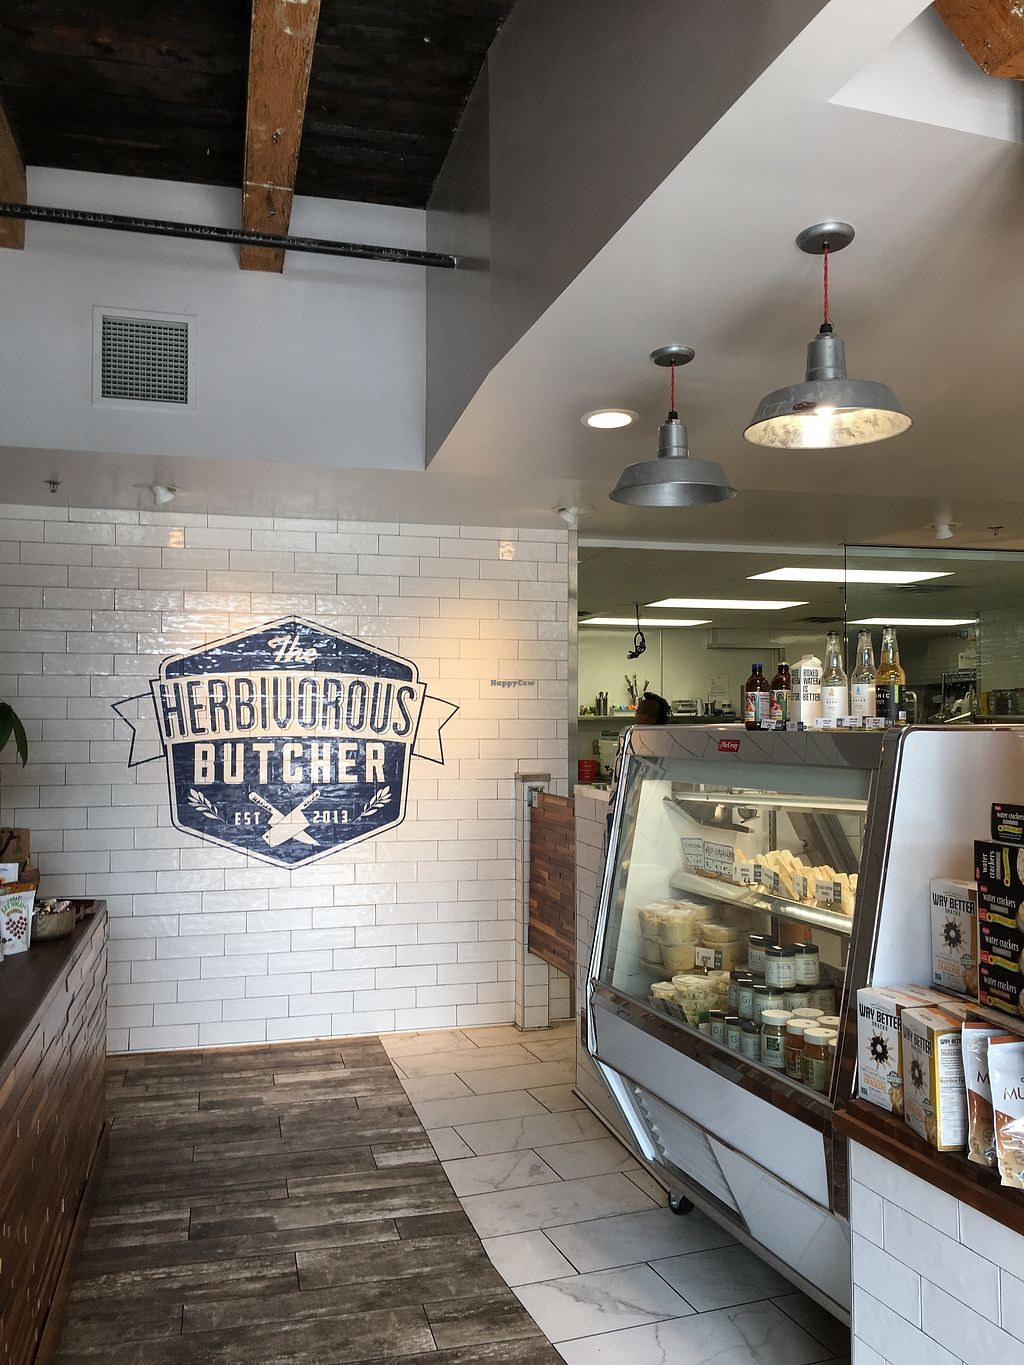 """Photo of The Herbivorous Butcher  by <a href=""""/members/profile/cookiem"""">cookiem</a> <br/>""""Cheese"""" case on the right <br/> October 15, 2017  - <a href='/contact/abuse/image/48170/315350'>Report</a>"""